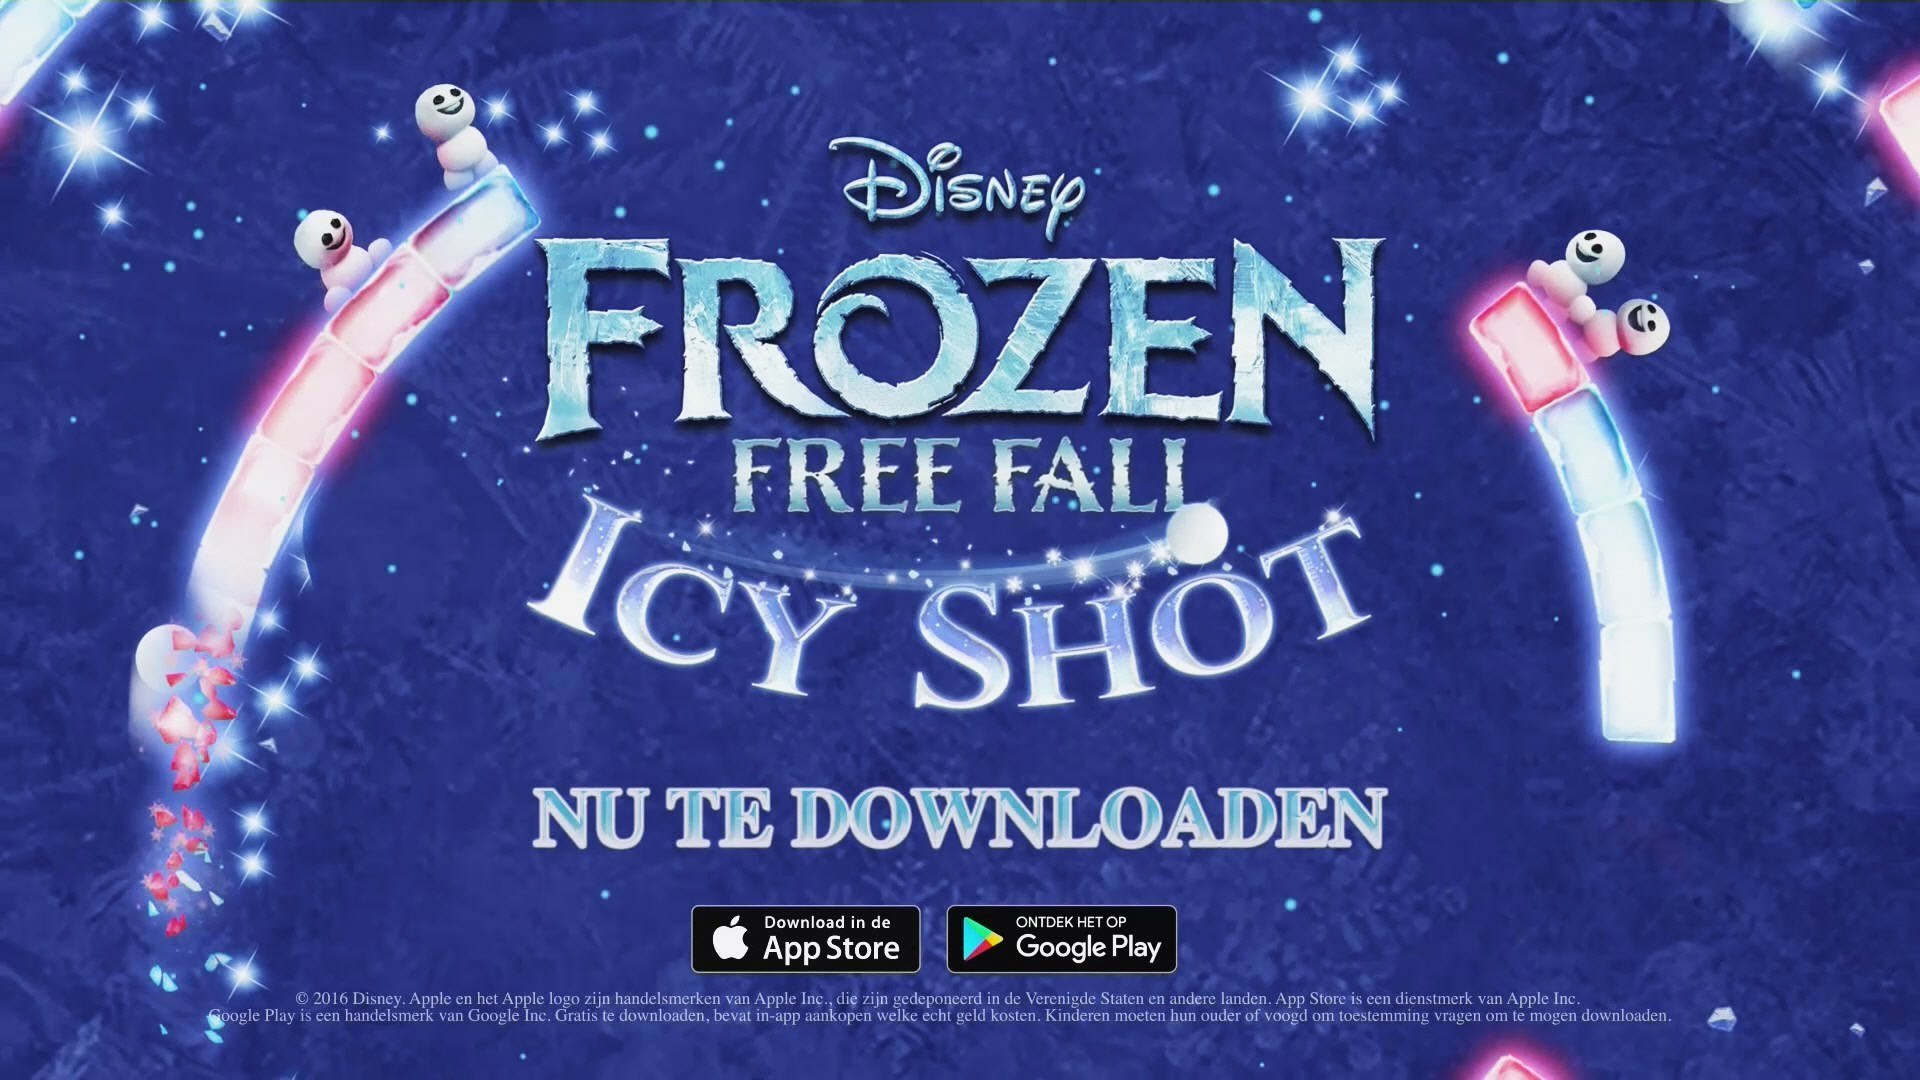 Frozen Free Fall: Icy Shot App Trailer